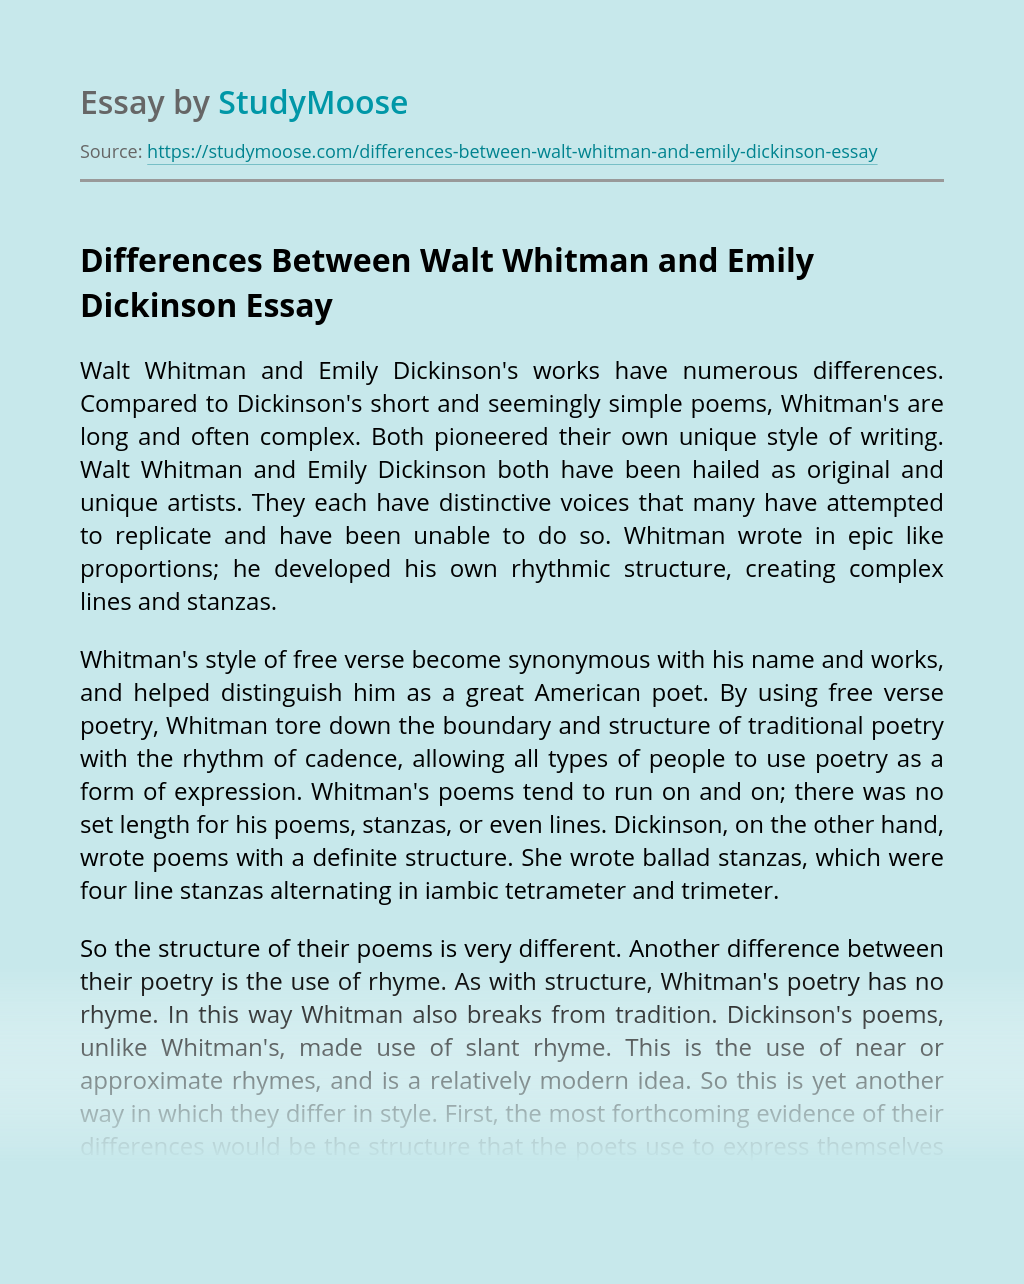 Differences Between Walt Whitman and Emily Dickinson